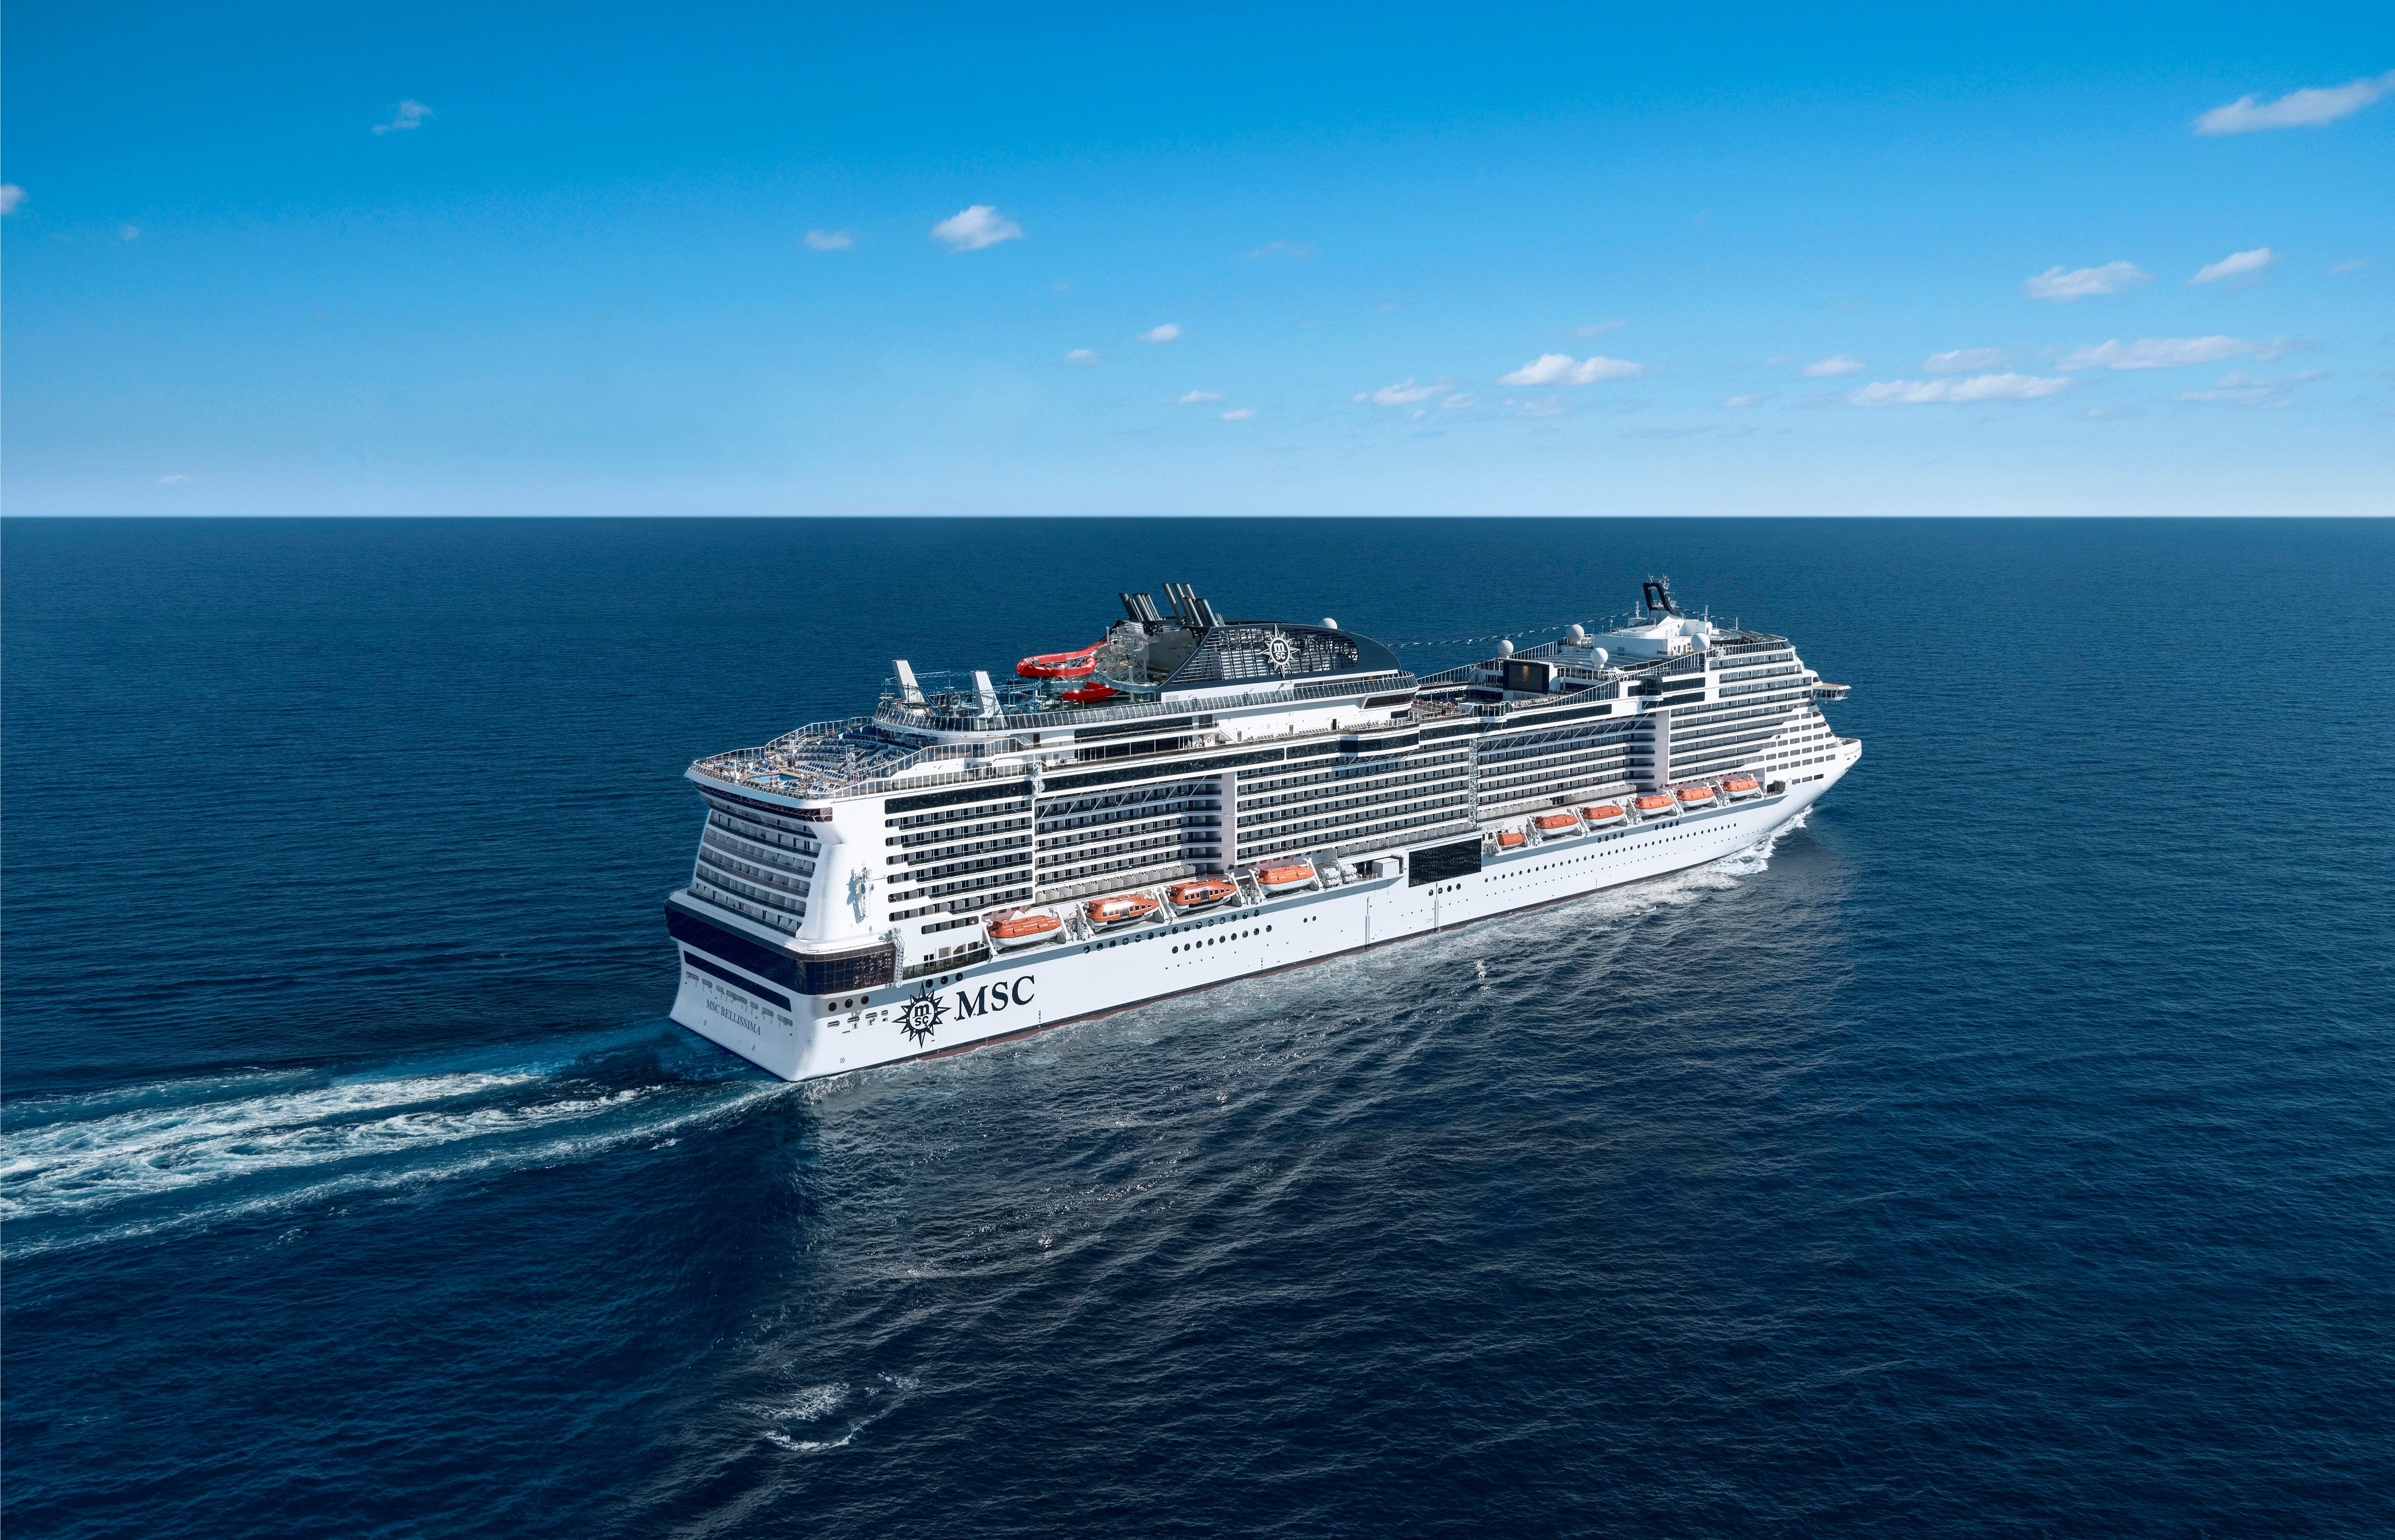 Cruise Ship Tours: MSC Cruises' New MSC Bellissima